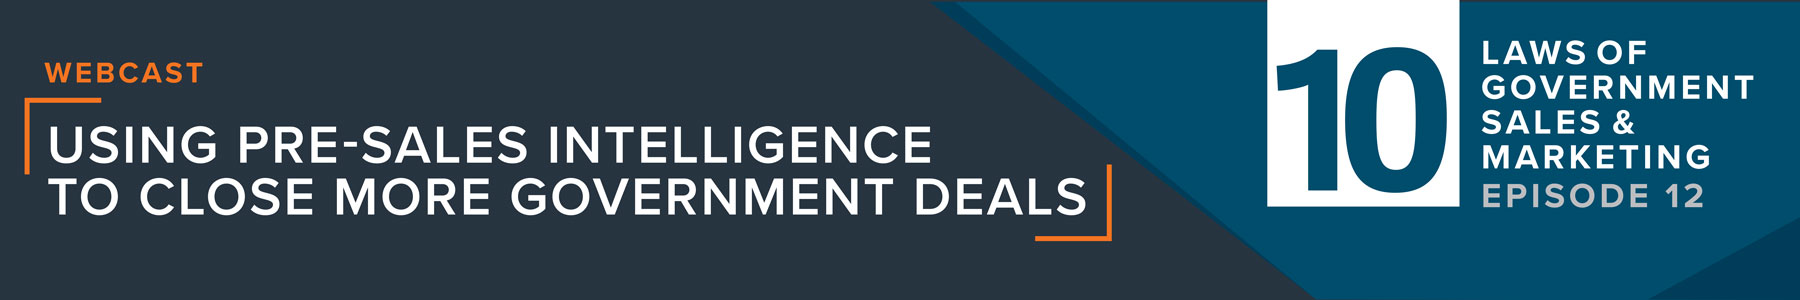 Using Pre-Sales Intelligence to Close More Government Deals